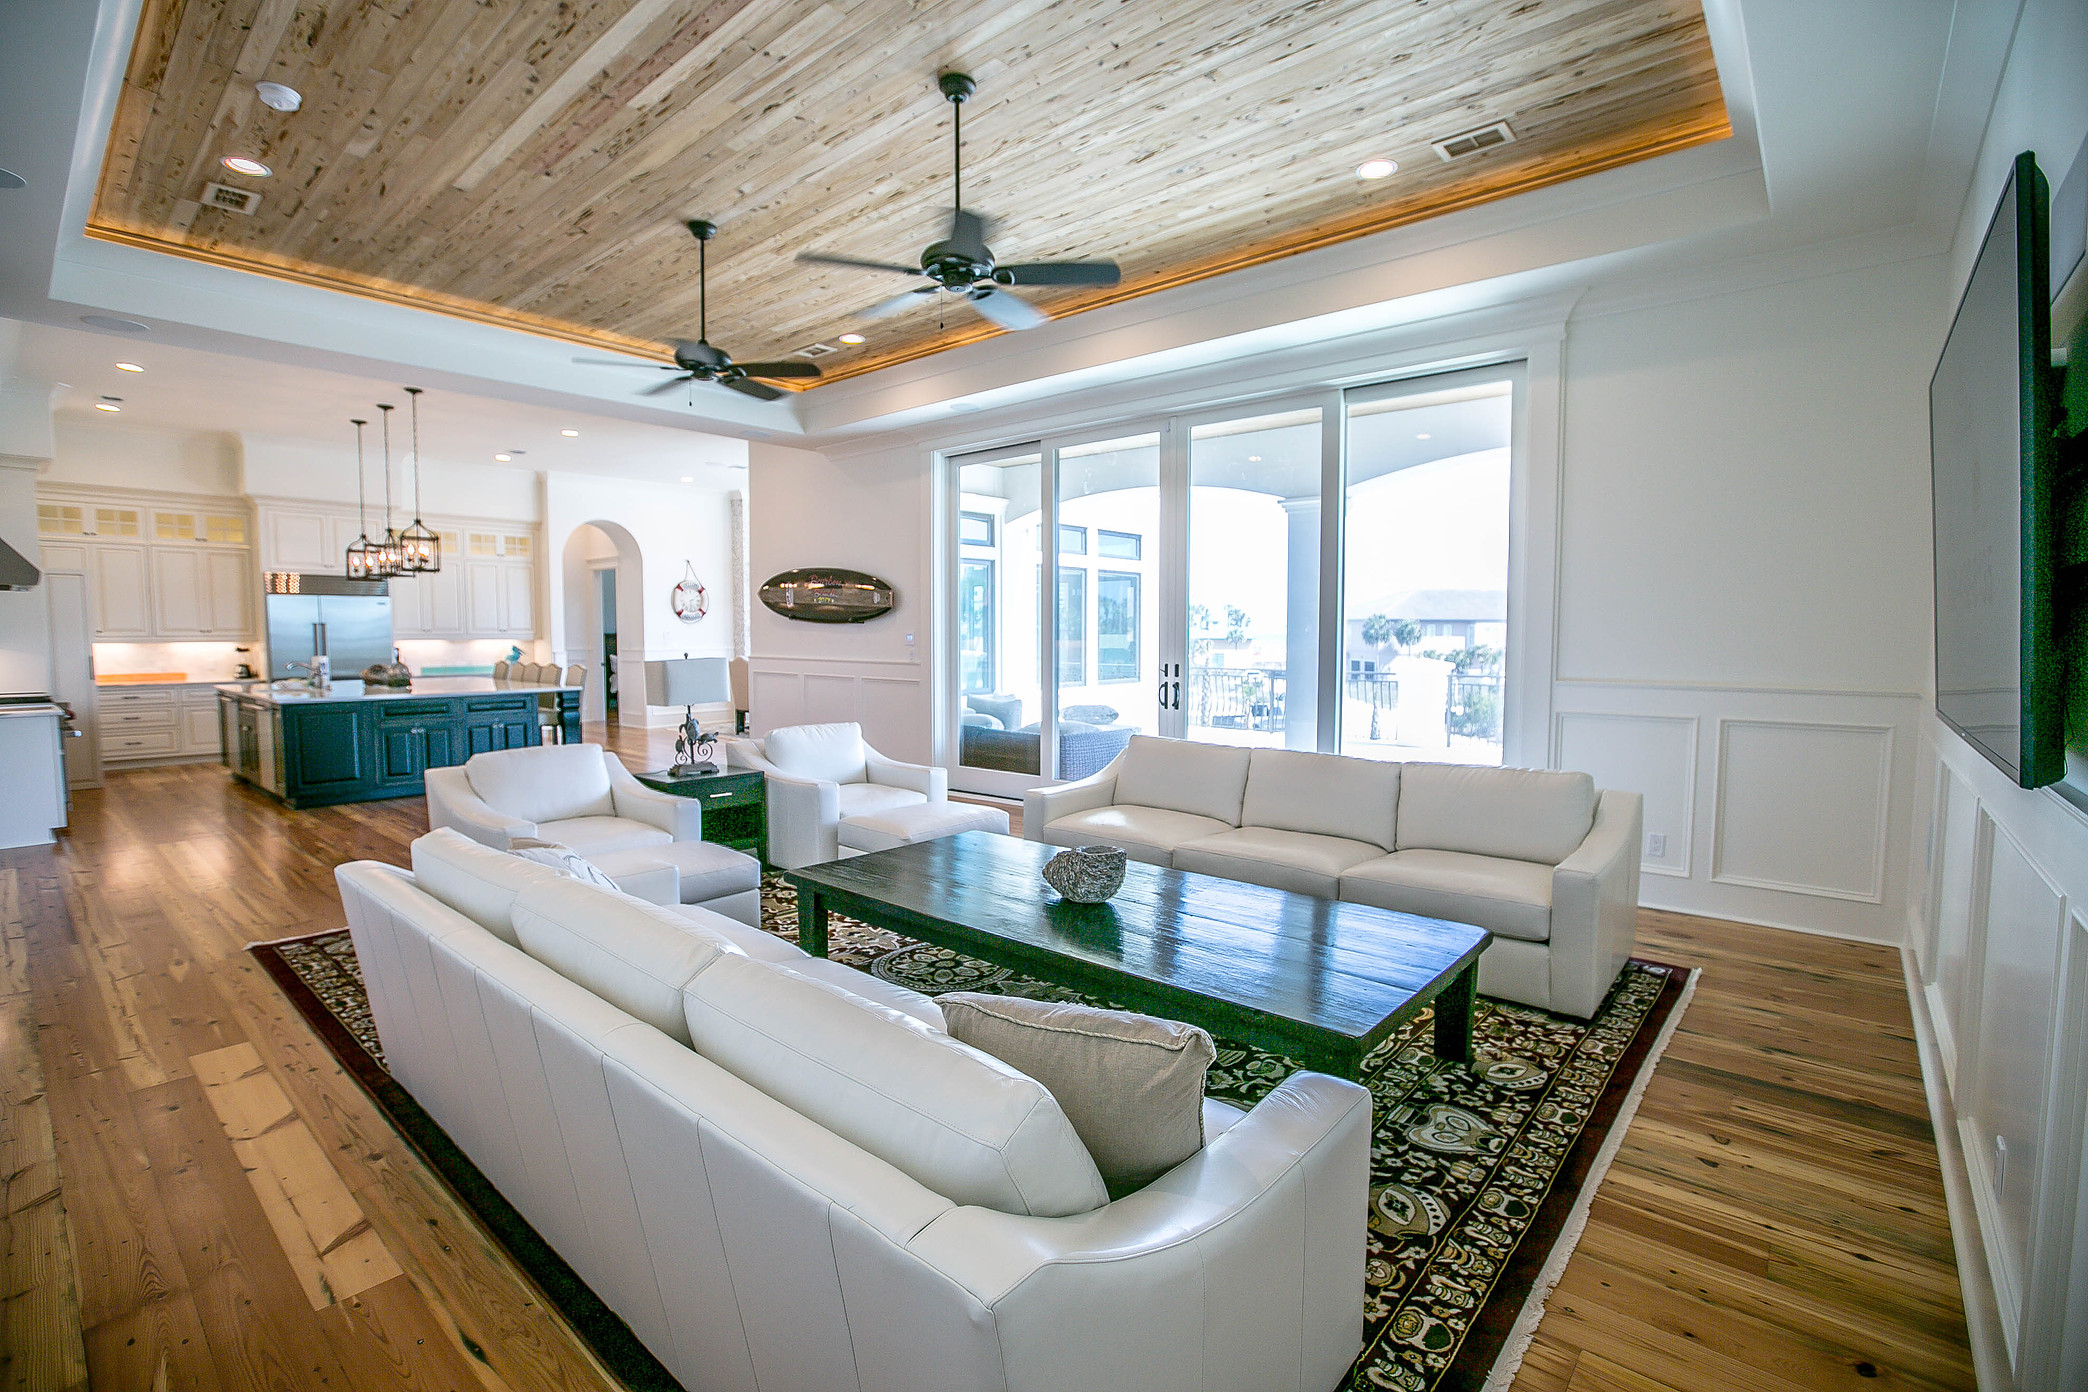 Custom home with reclaimed wood floors and wood planked ceiling inset